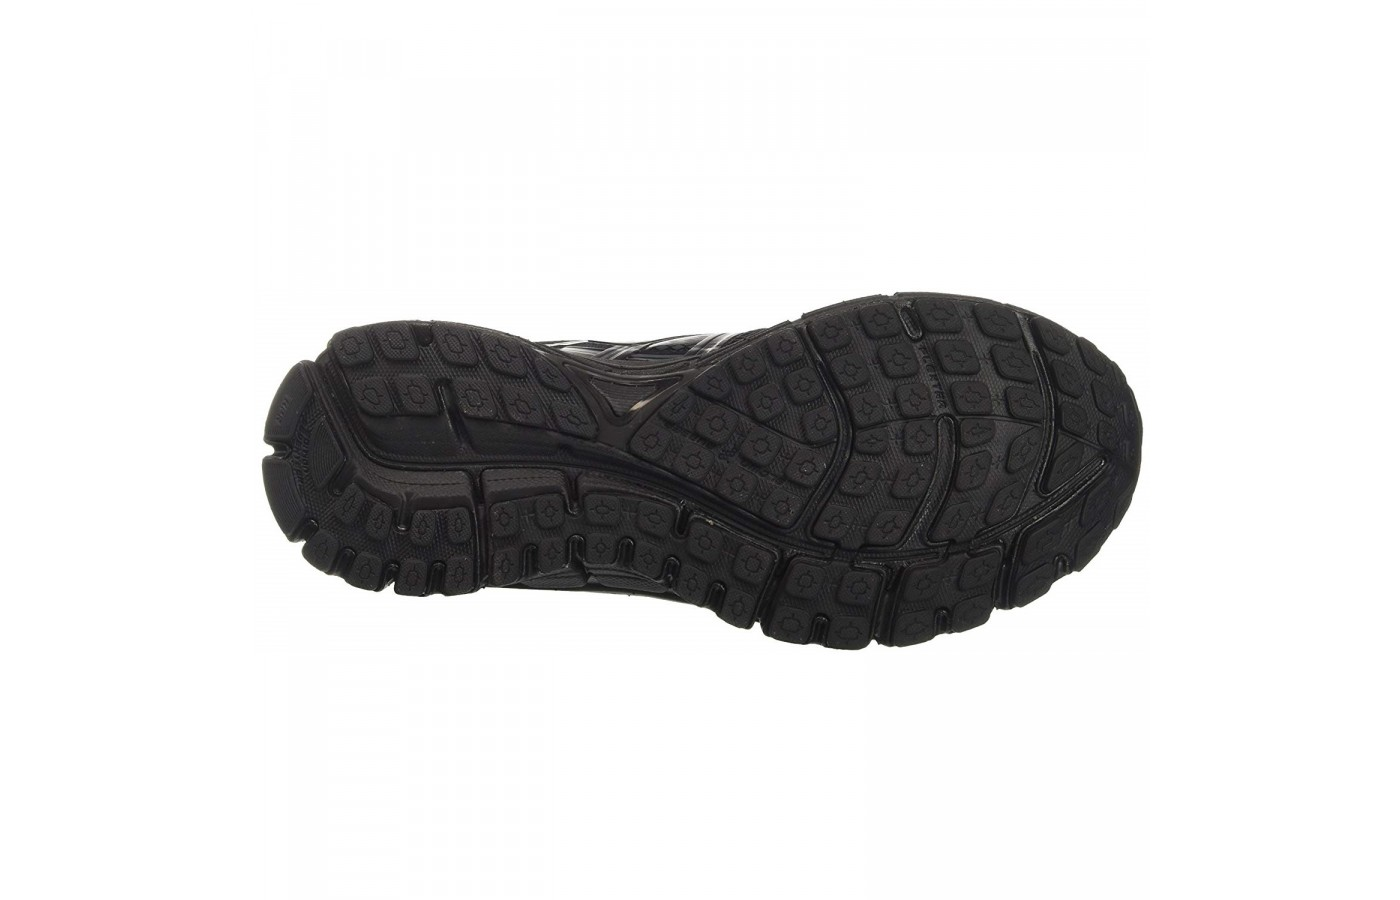 The Brooks Adrenaline GTS 17 offers a durable and sticky tread in order to offer superior traction.